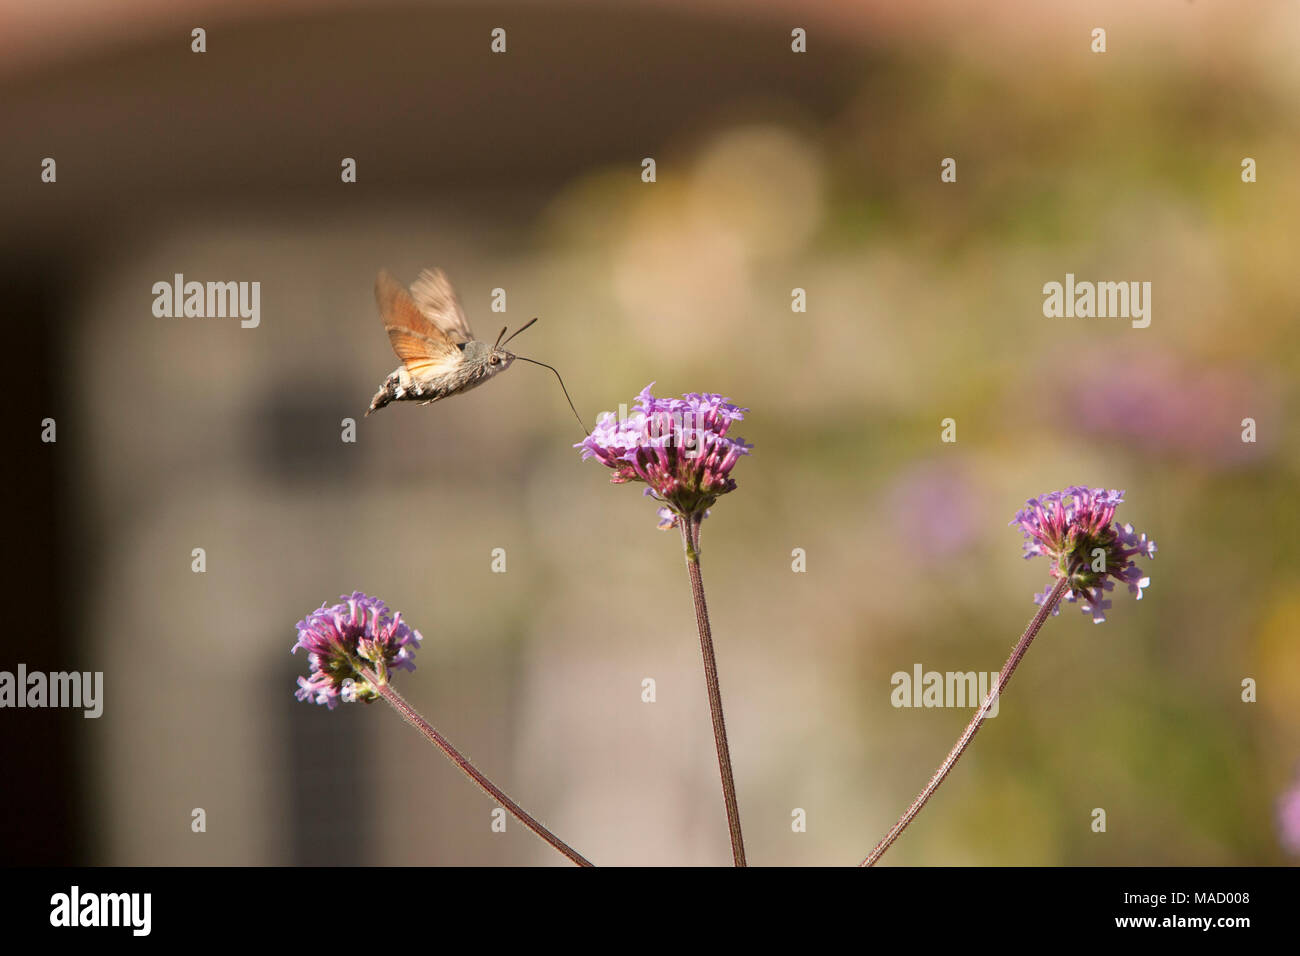 A hummingbird hawk moth Macroglossum stellatarum, in a country garden in Somerset England UK GB. Its long proboscis is visible for feeding on nectar - Stock Image